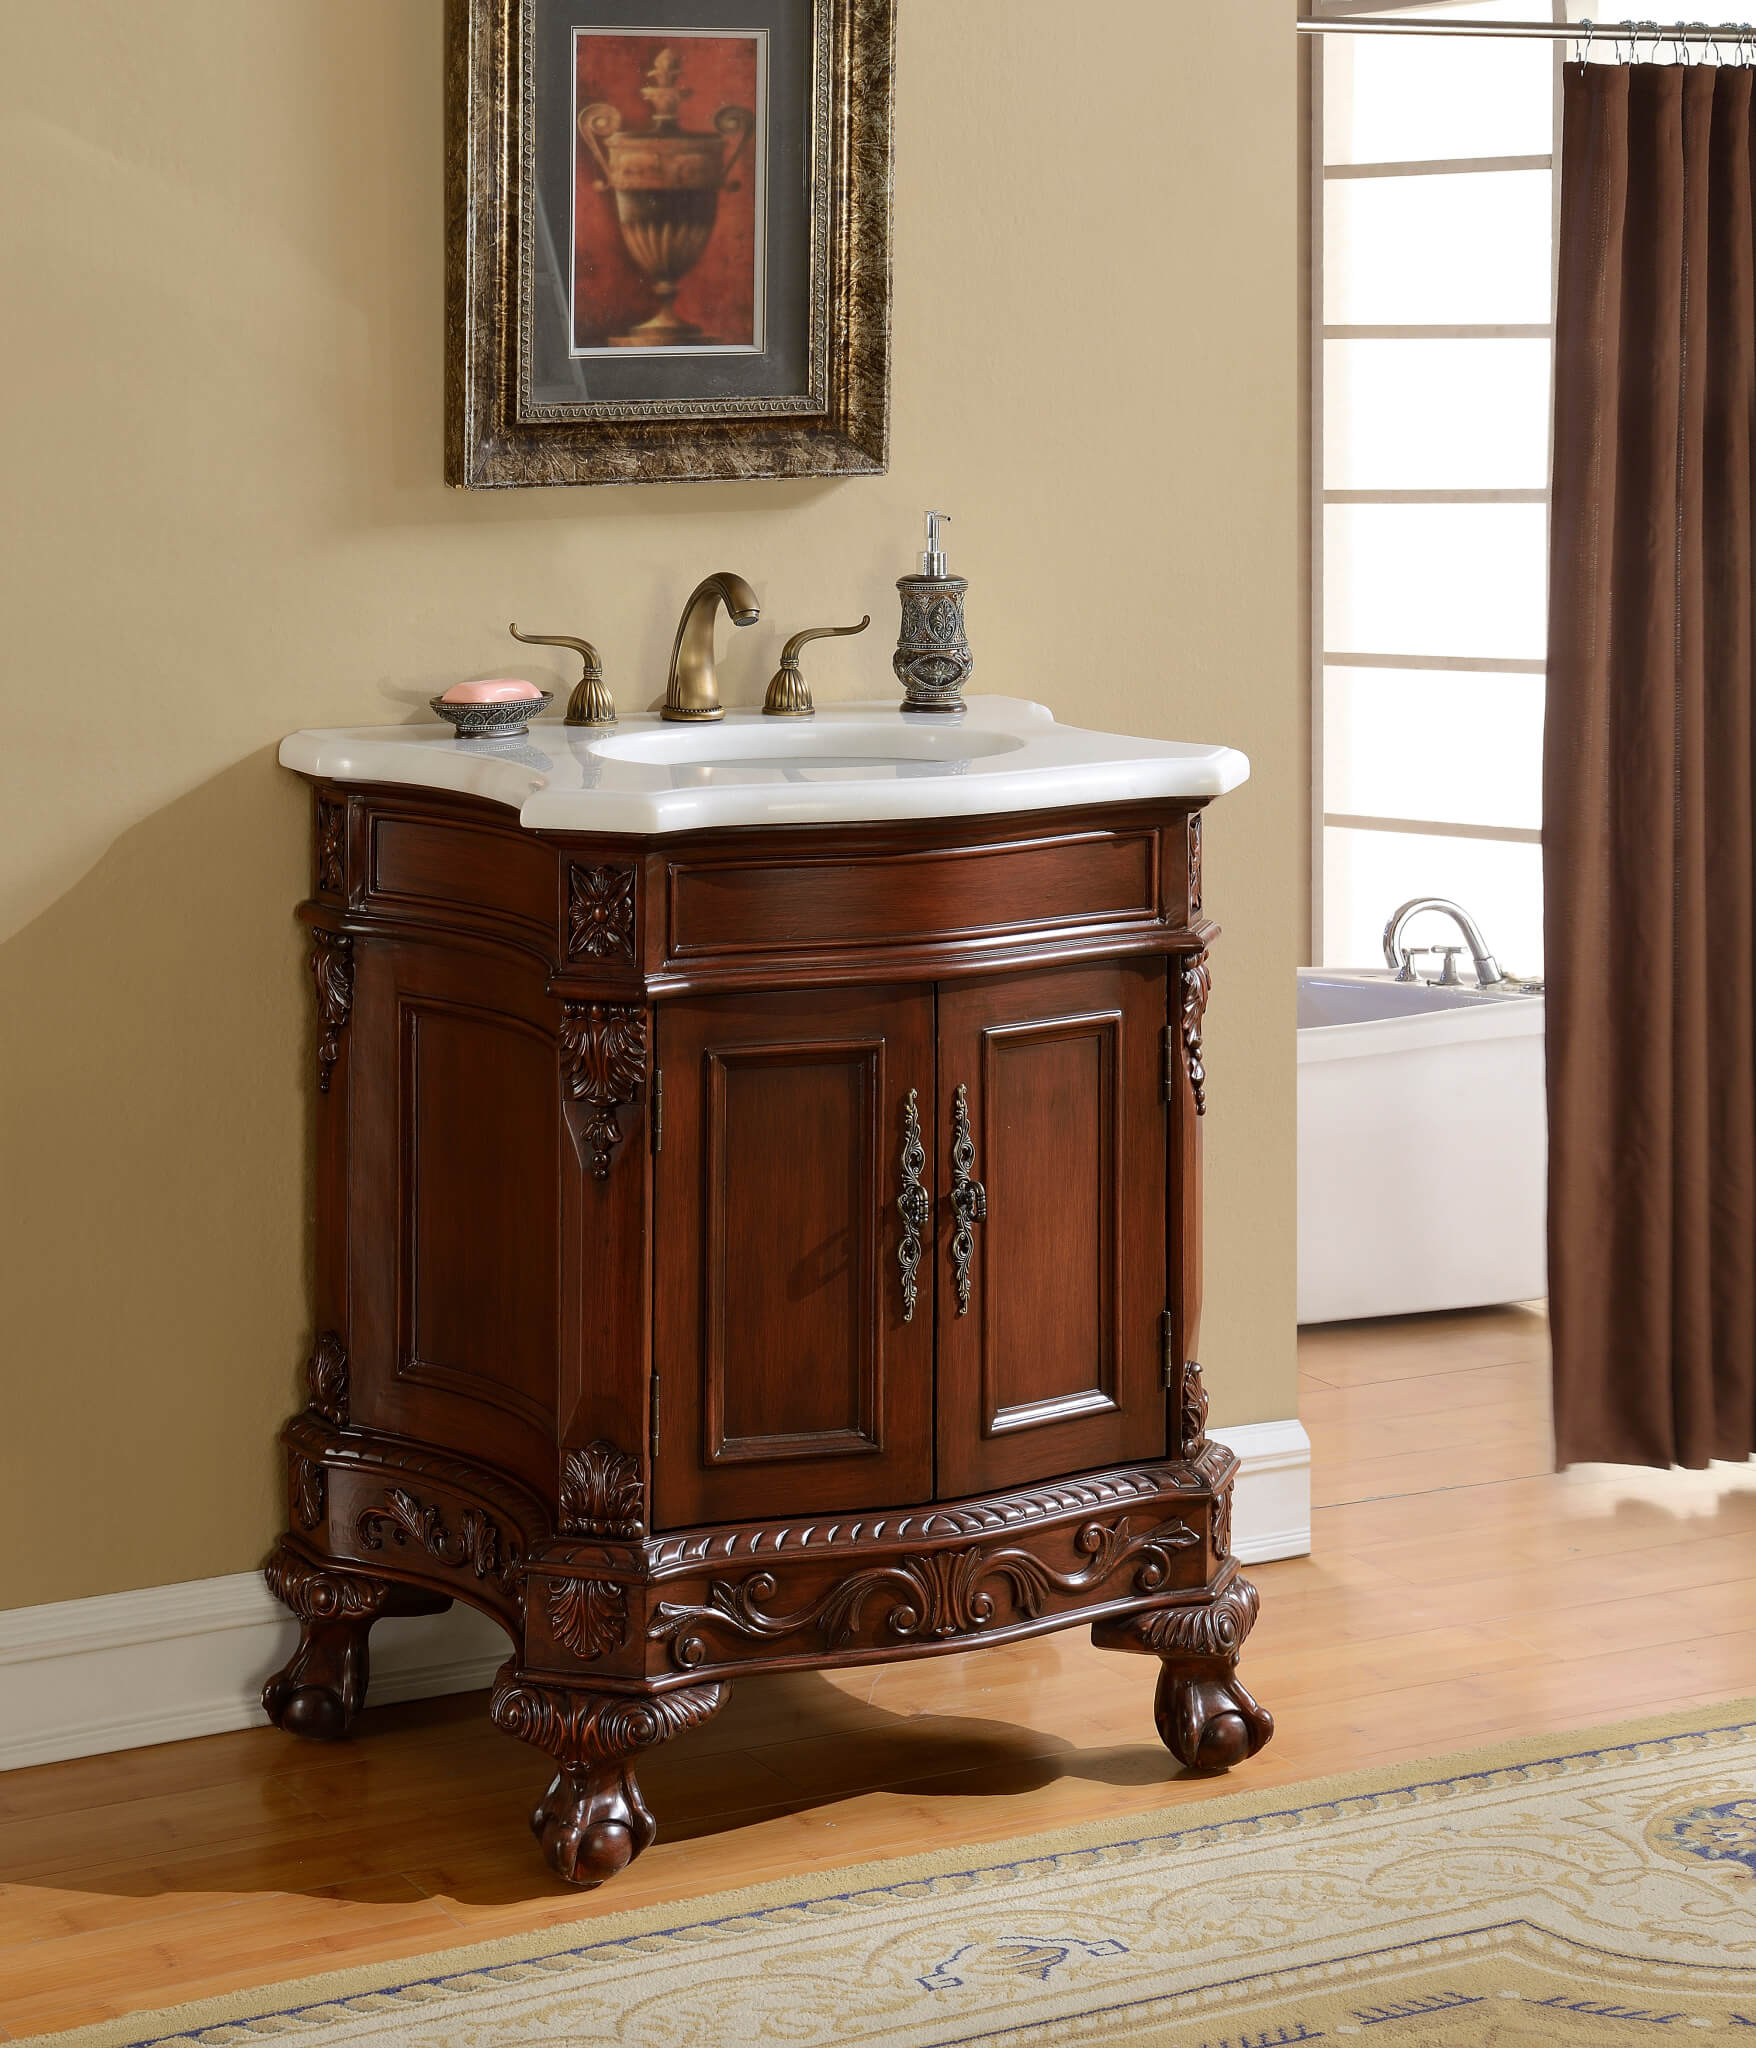 30 chelsea bathroom vanity antique recreations